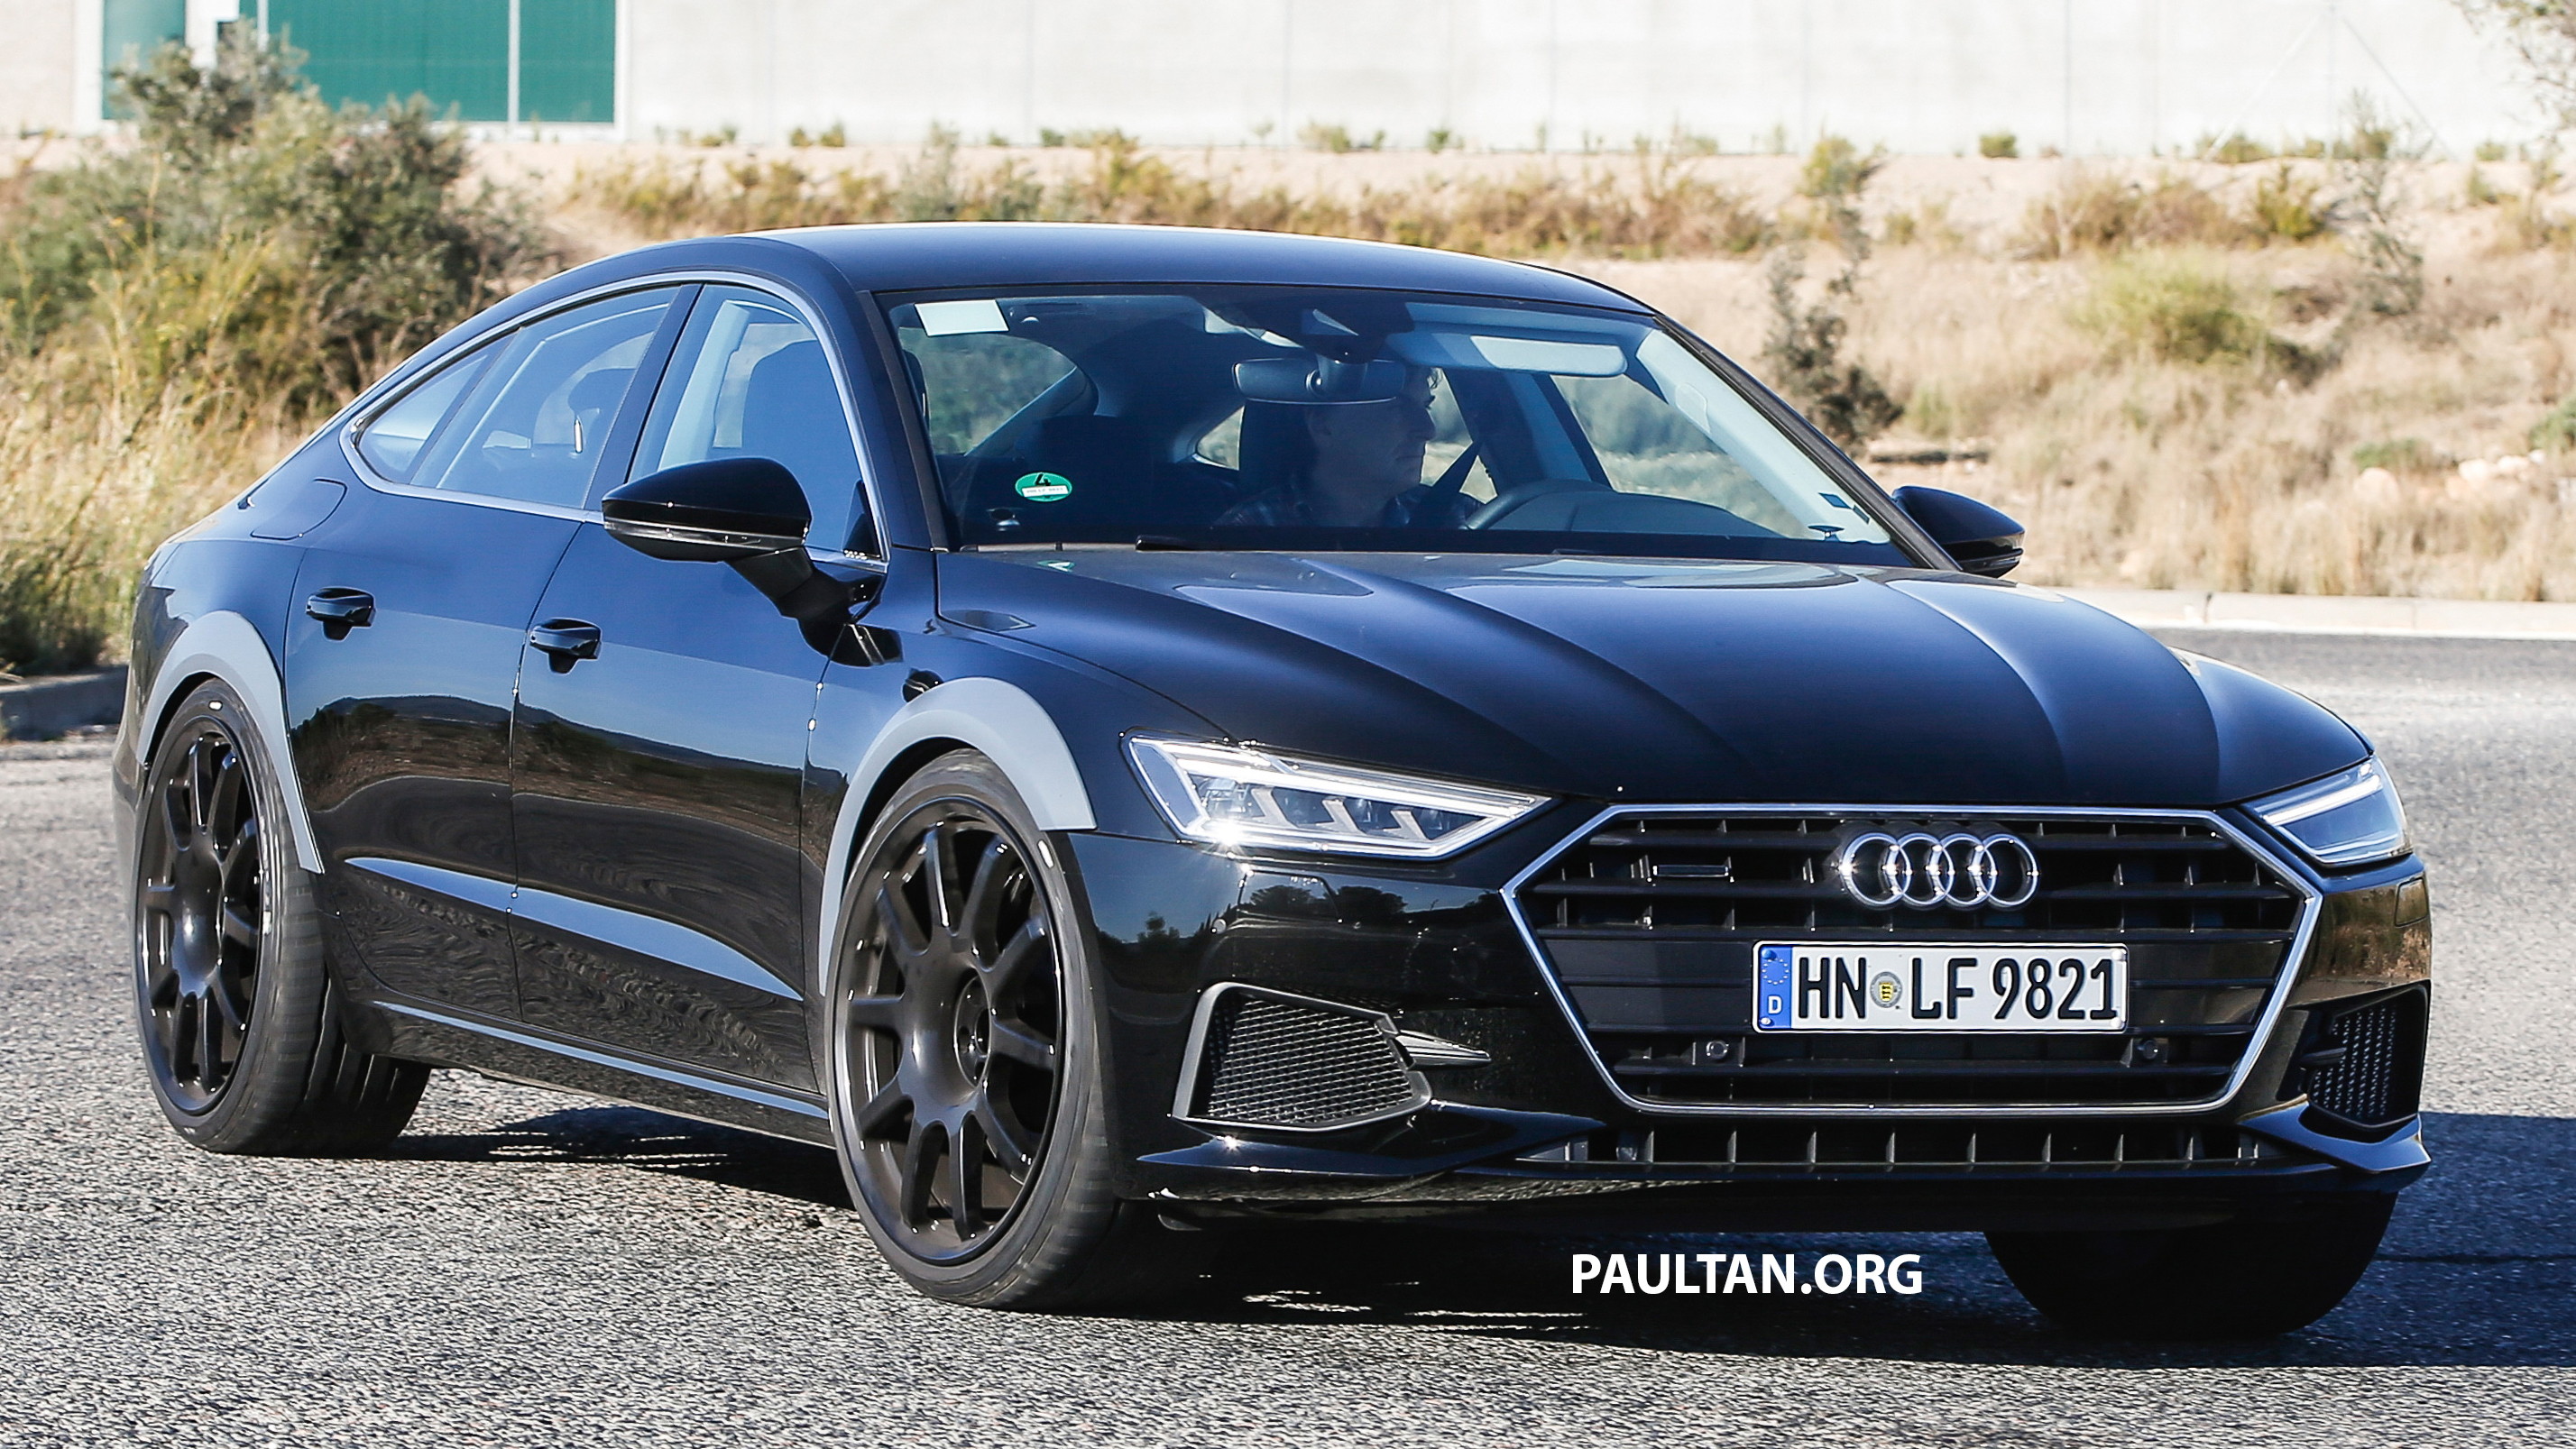 Spied 2019 Audi Rs7 Prototype Spotted Once Again Paultan Org